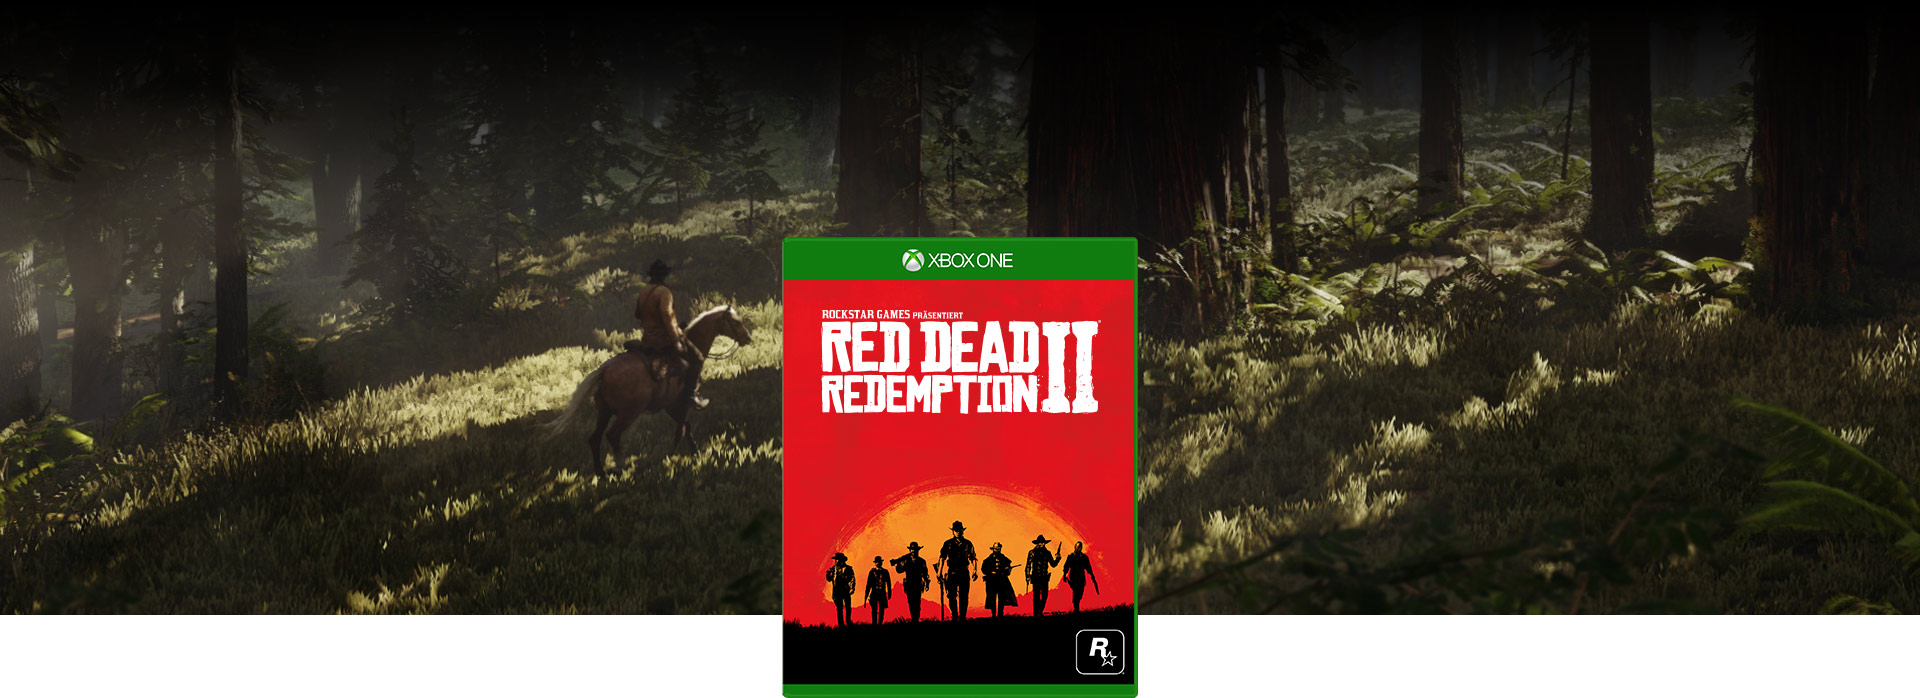 Red Dead Redemption 2 – Verpackung